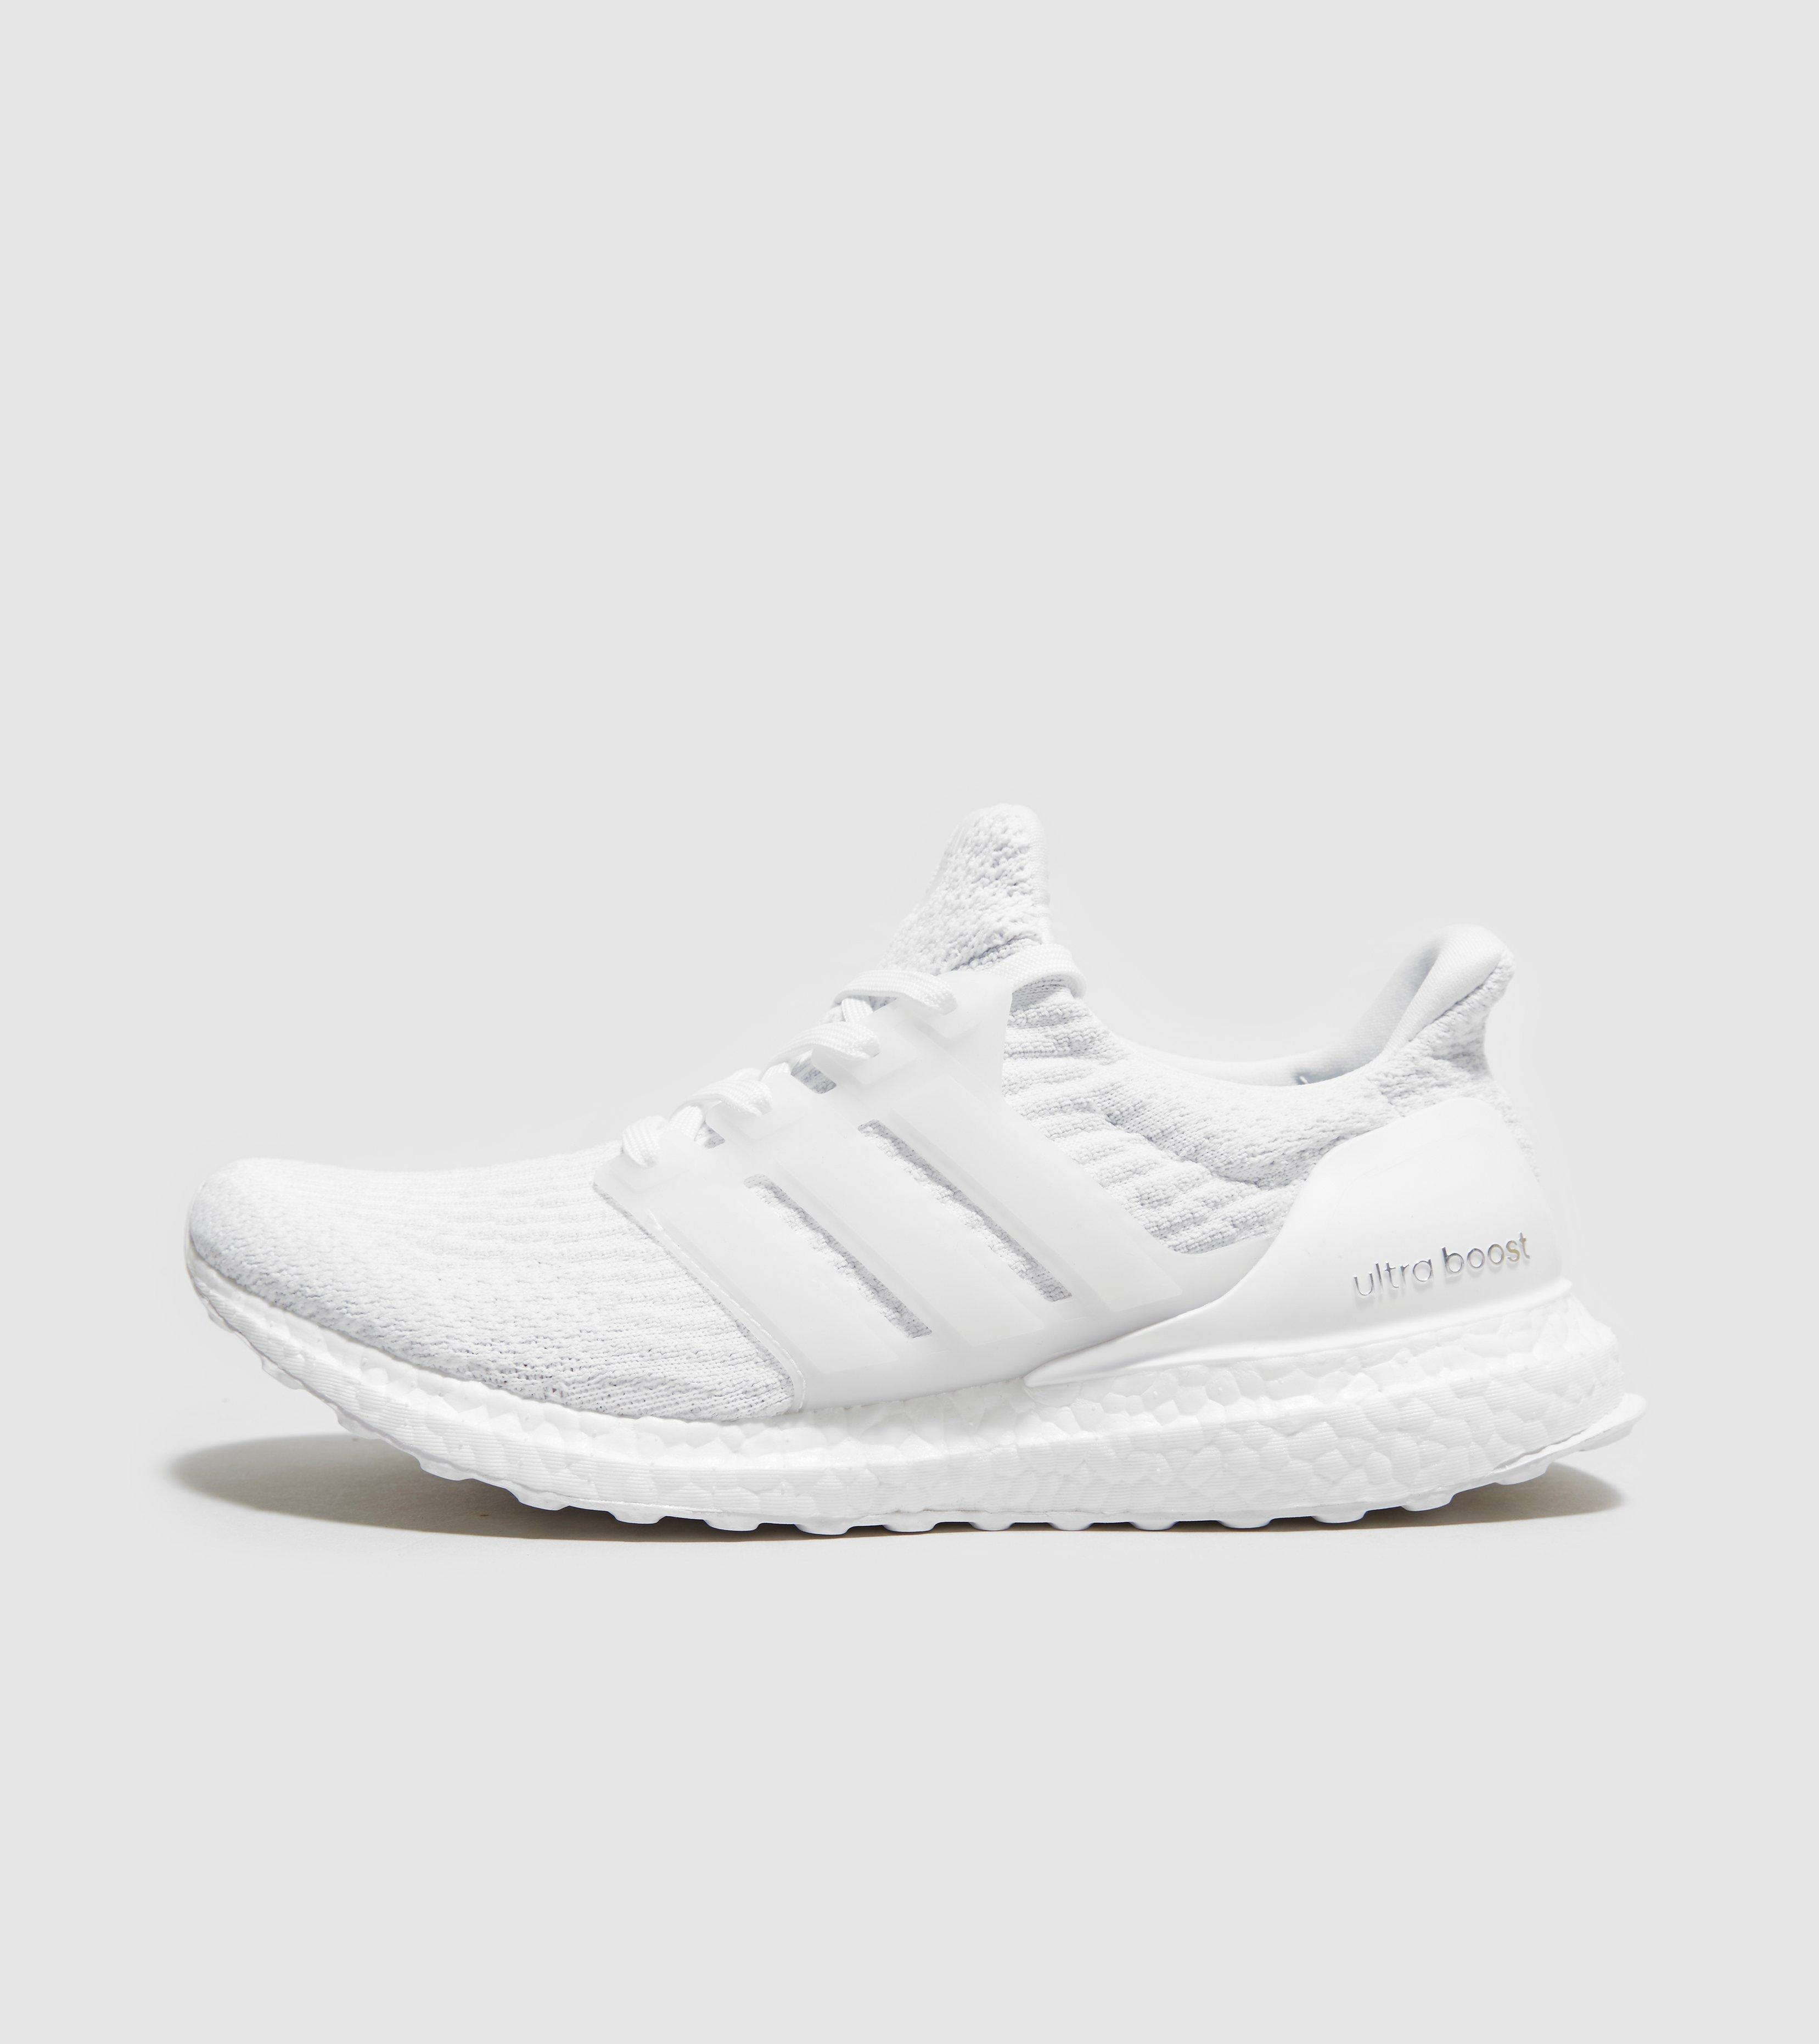 info for 6bd0f a55ae NEW 2017 UA Adidas Ultra Boost 3.0 Ice Blue S82055